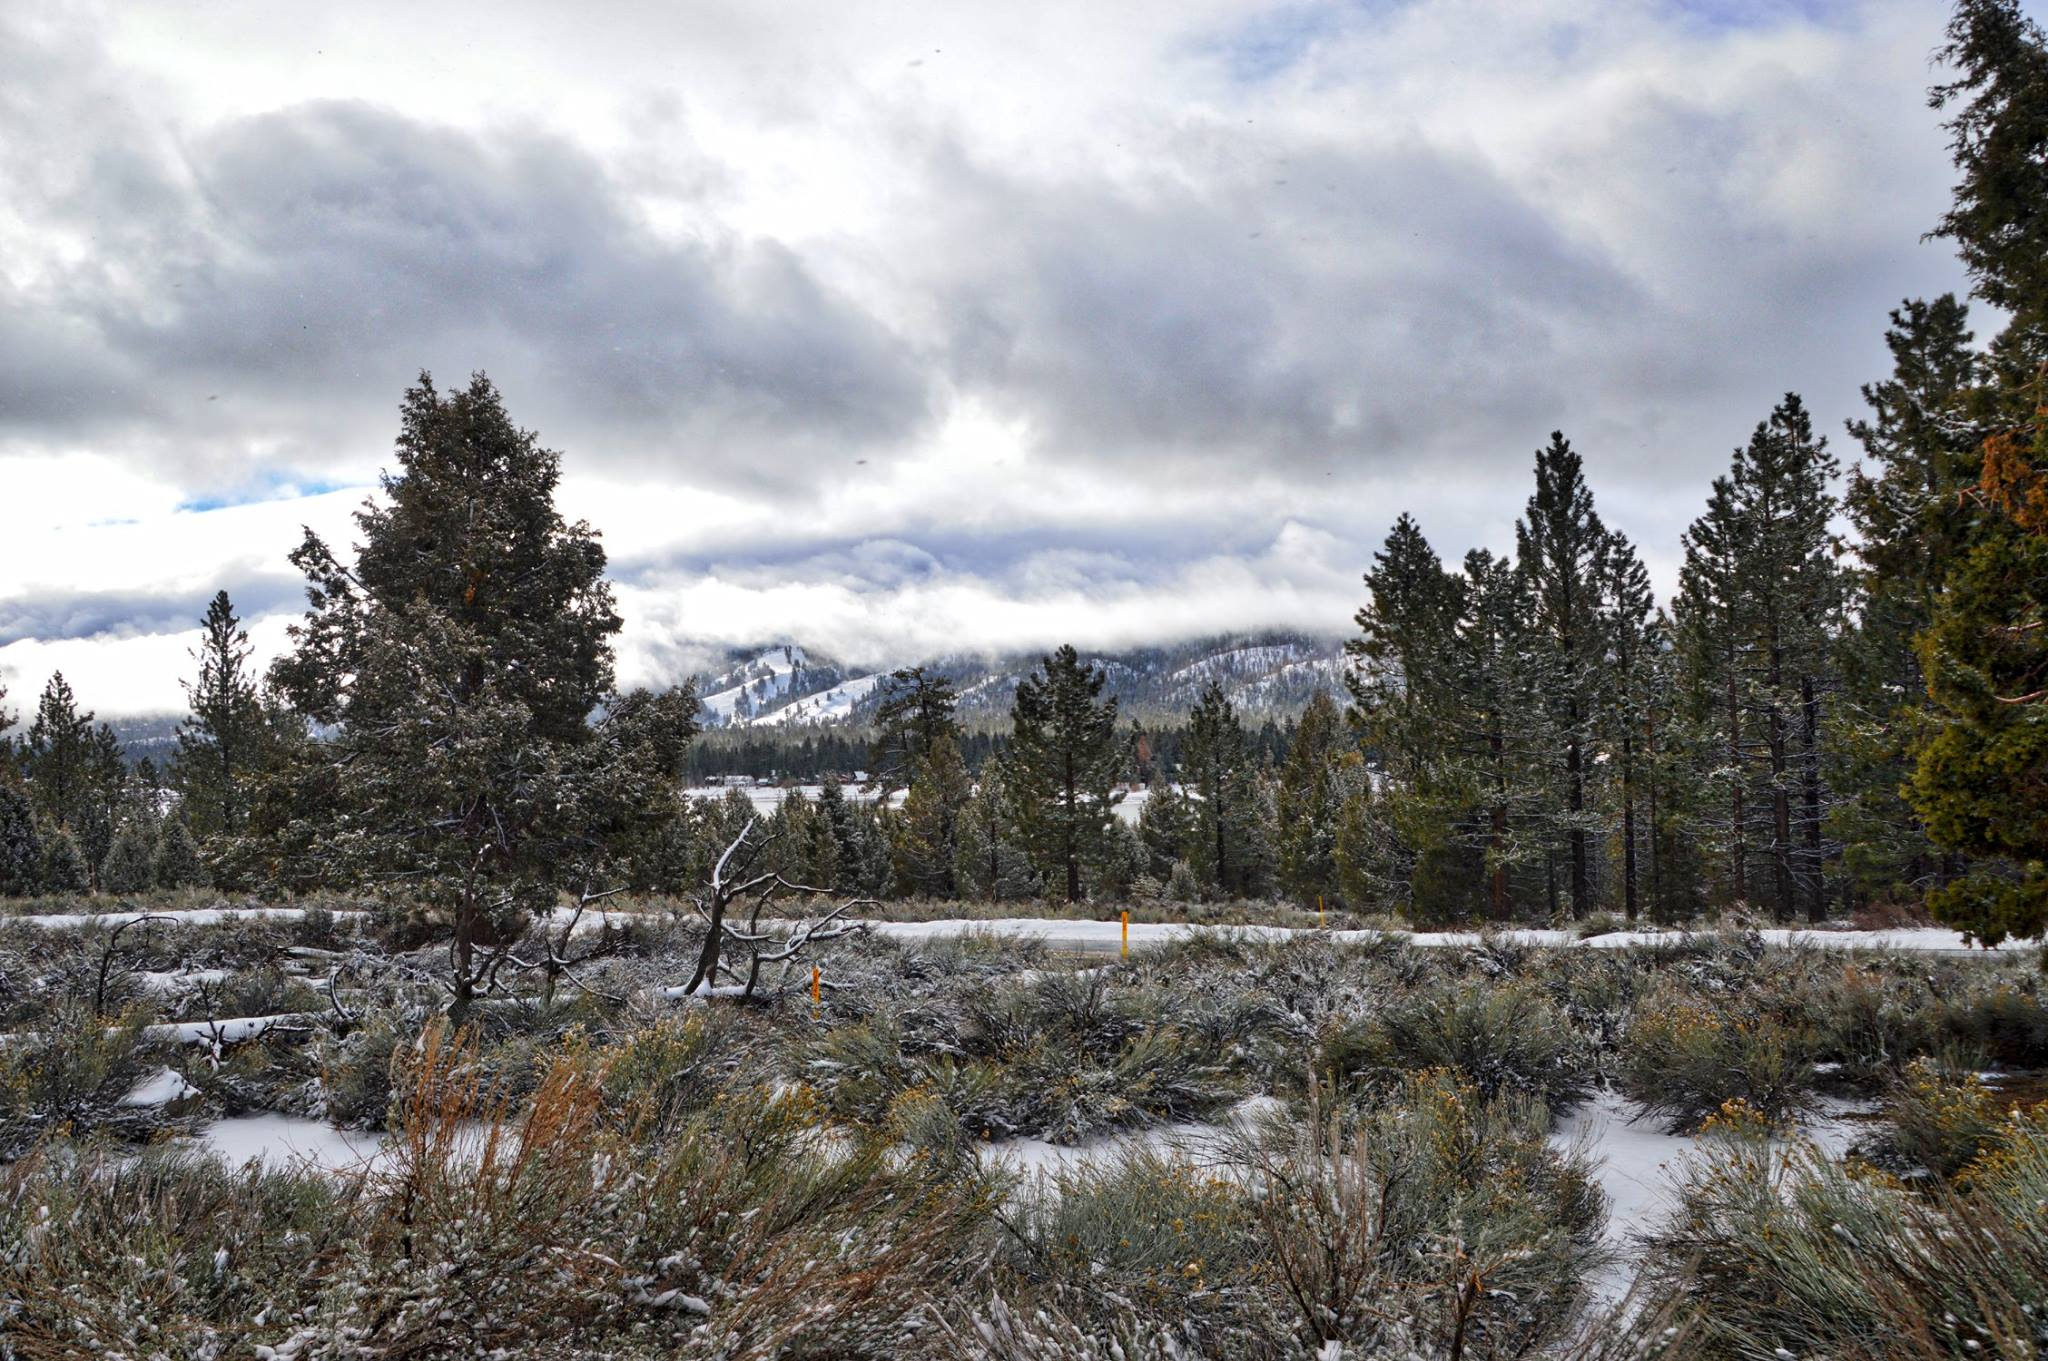 Membership in the Southern California Mountains Foundation Helps Protect Natural Spaces